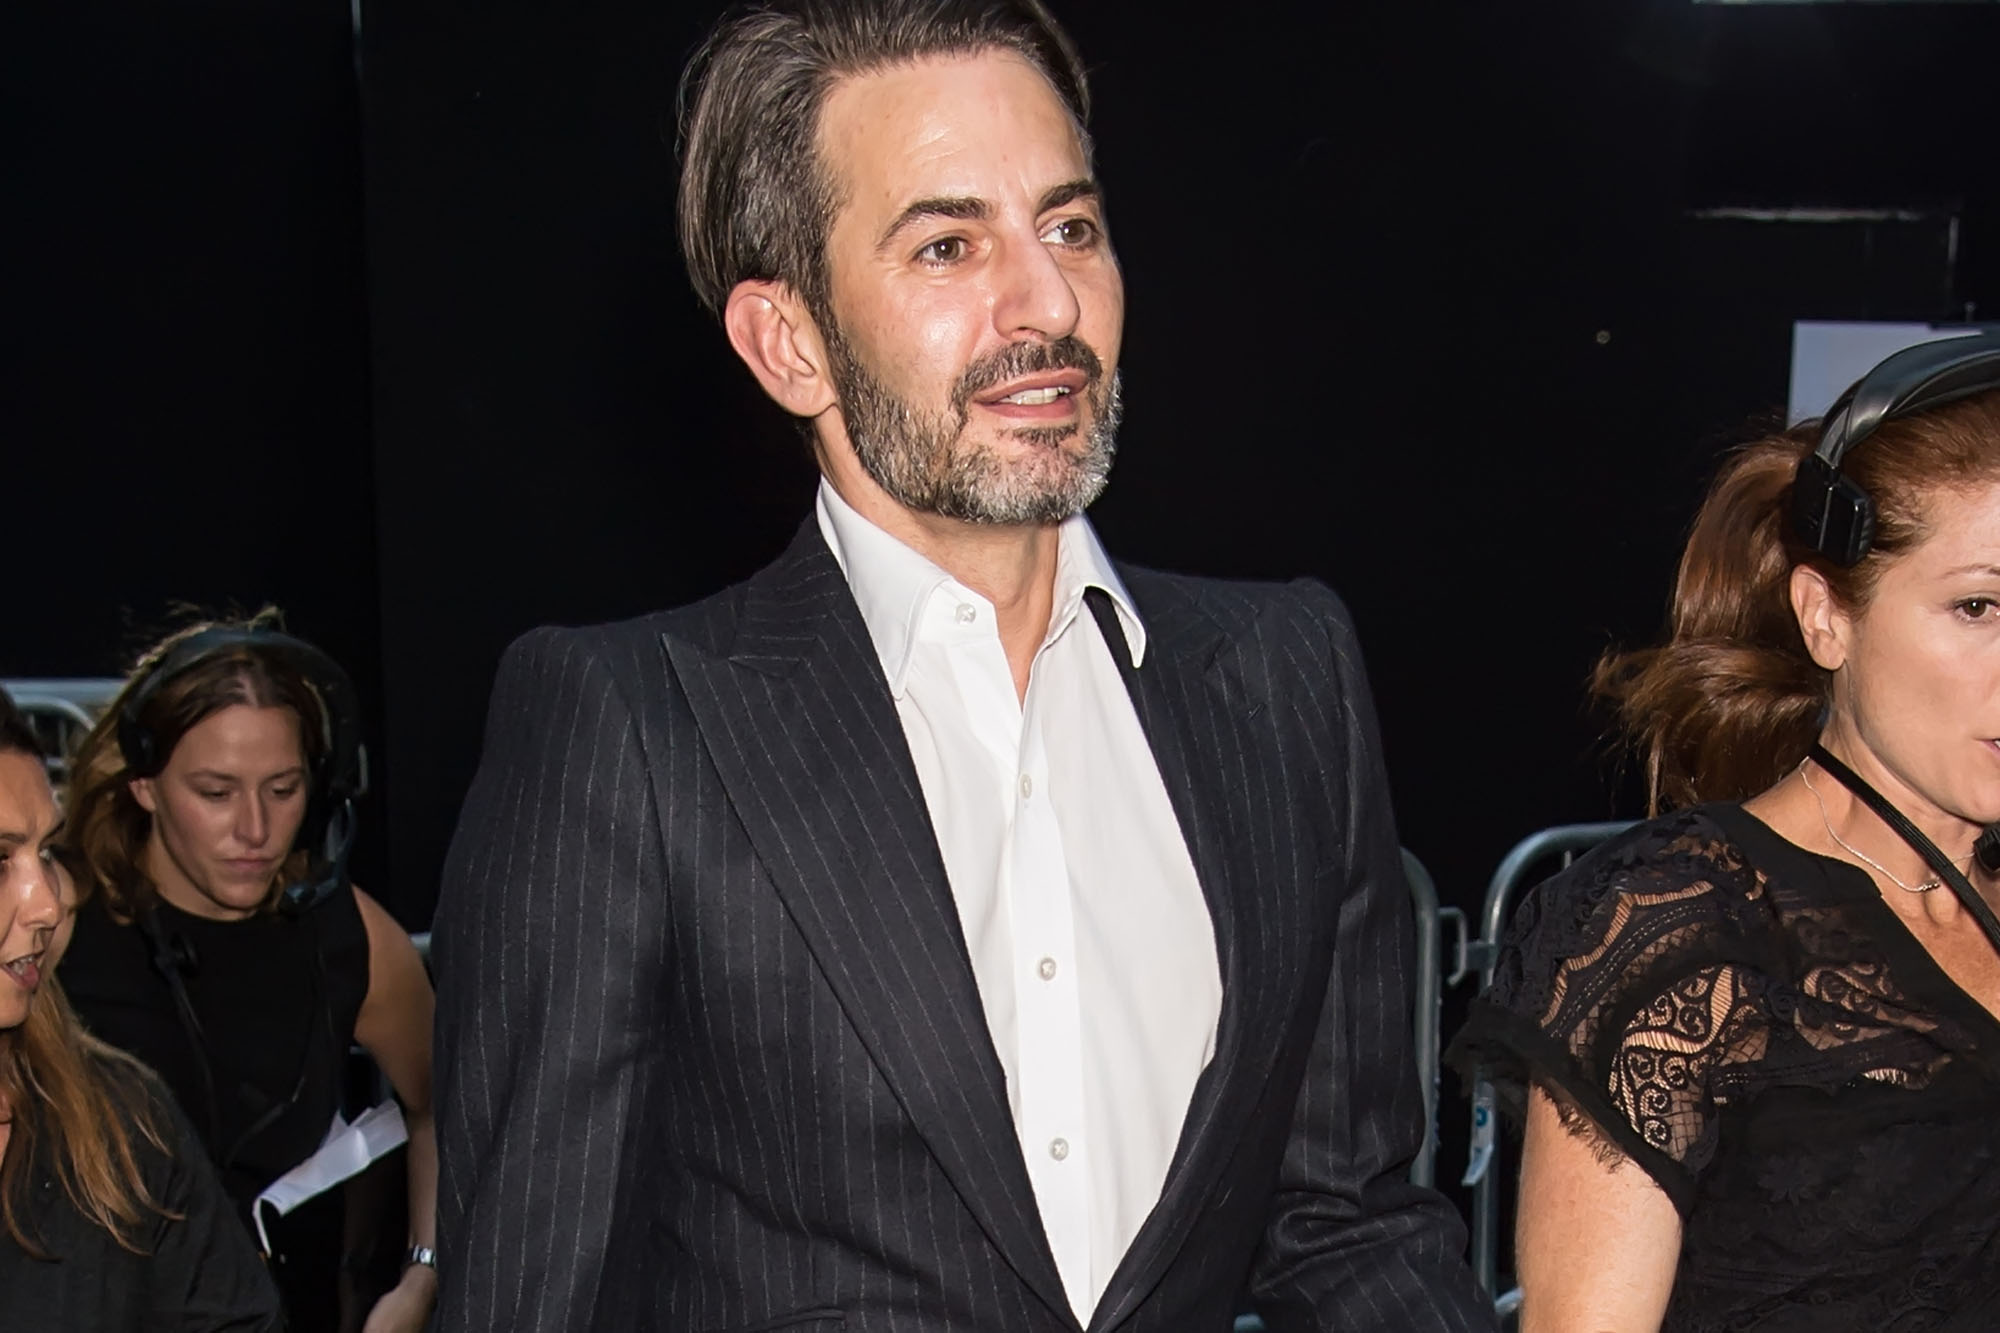 What S Wrong With Marc Jacobs Mystery Of Business Struggles Bizarre Behavior